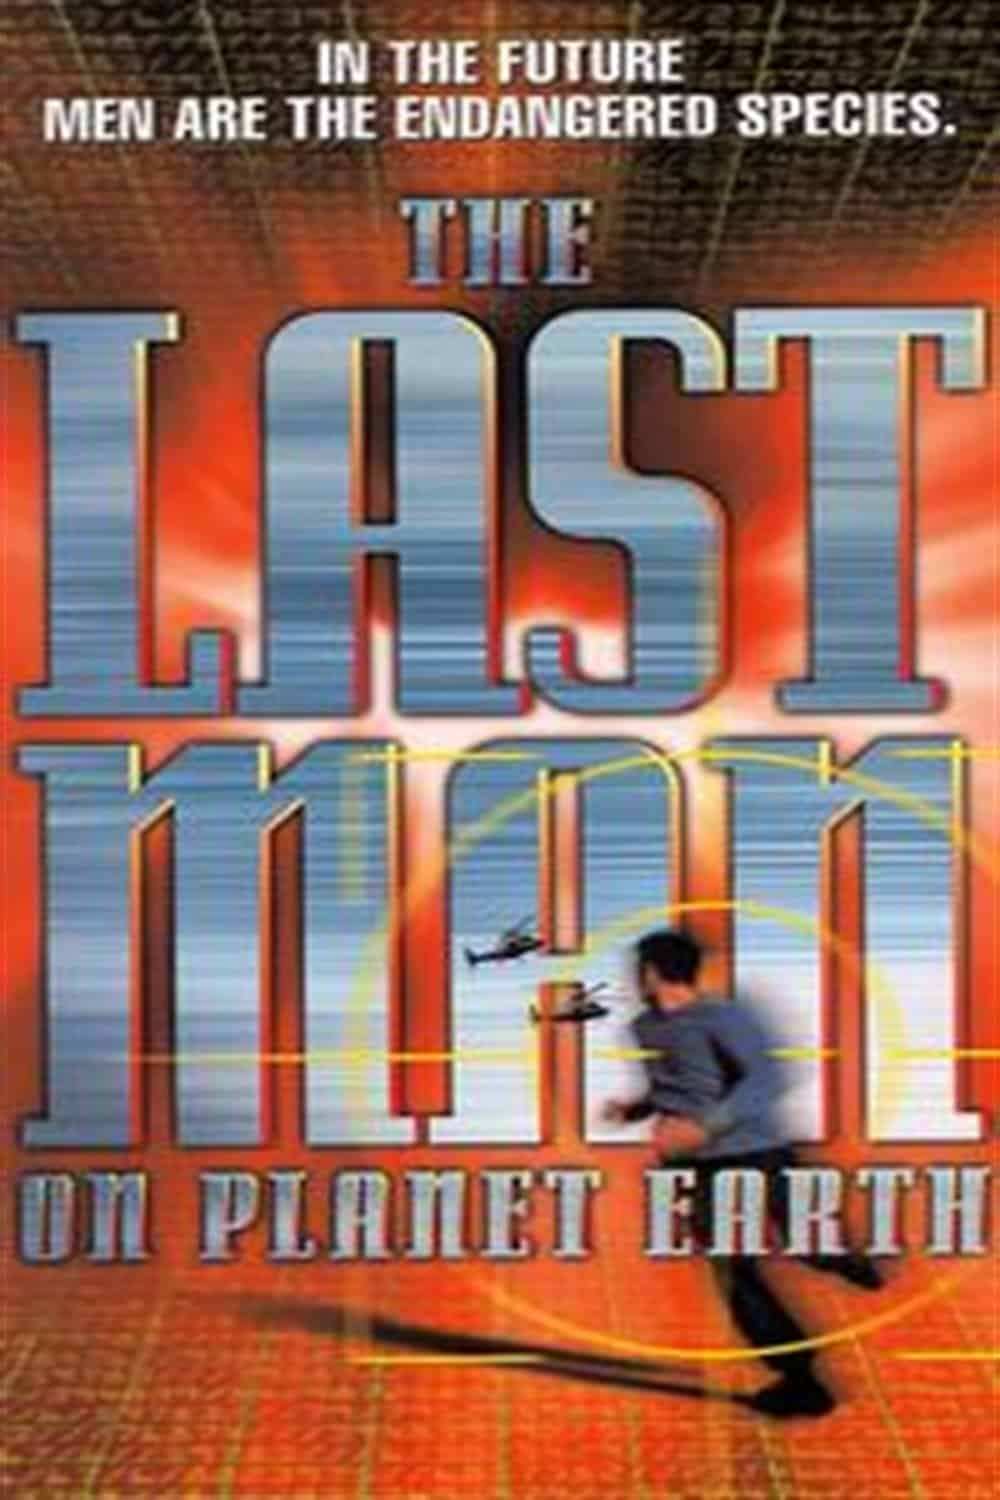 The Last Man on Planet Earth, 1999